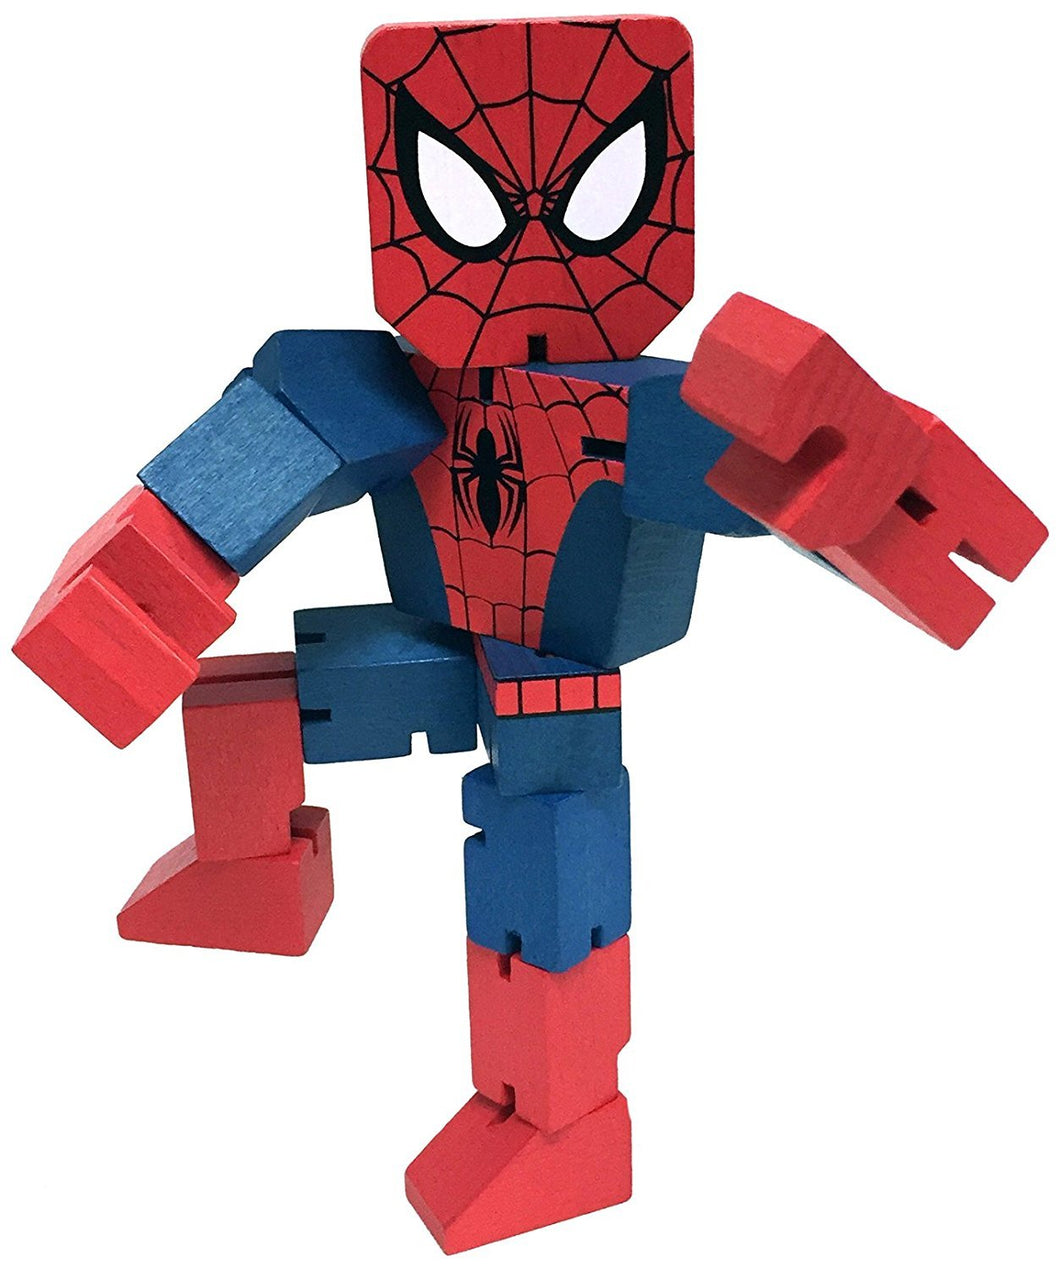 Marvel Spiderman Wooden Warriors Doll 8